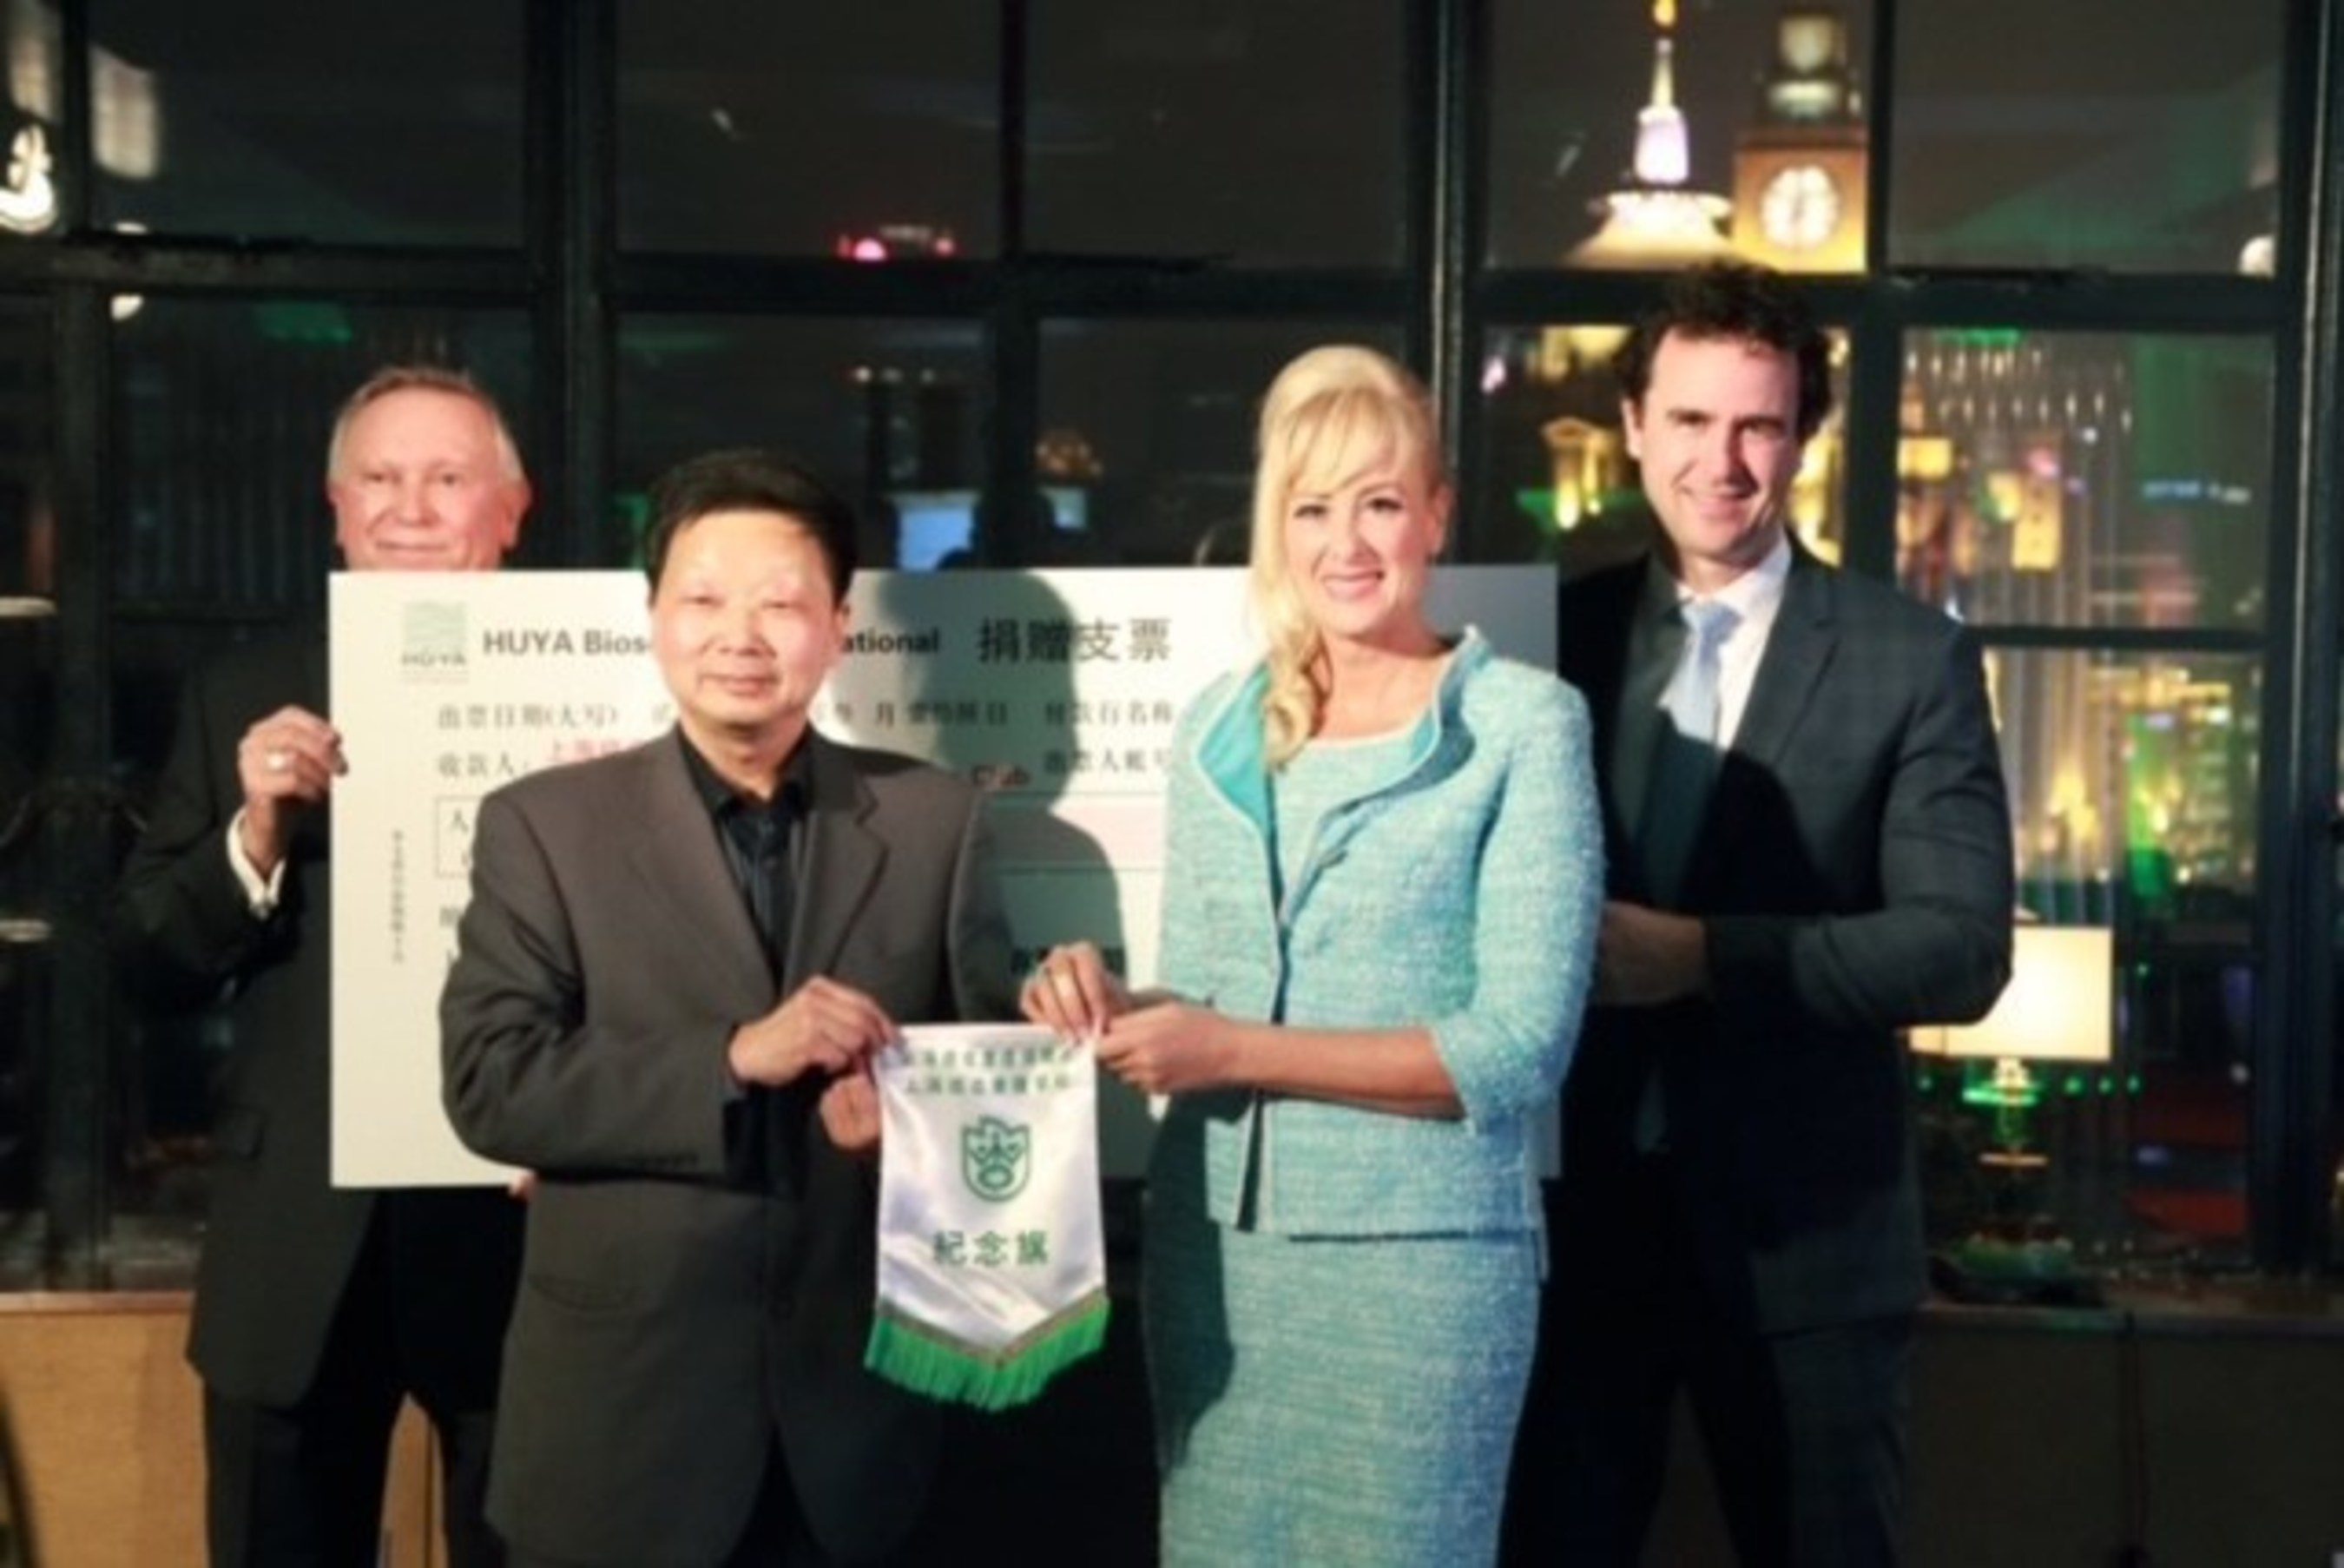 From left - Dr. Bob Goodenow, HUYA's Chief Business Officer; Mr. Fangda Hua, Secretary General of Shanghai Cancer Rehabilitation Club; Dr. Mireille Gillings, HUYA's President, CEO & Executive Chair; Mr. Clement Gingras, HUYA's CTO & COO Asia.